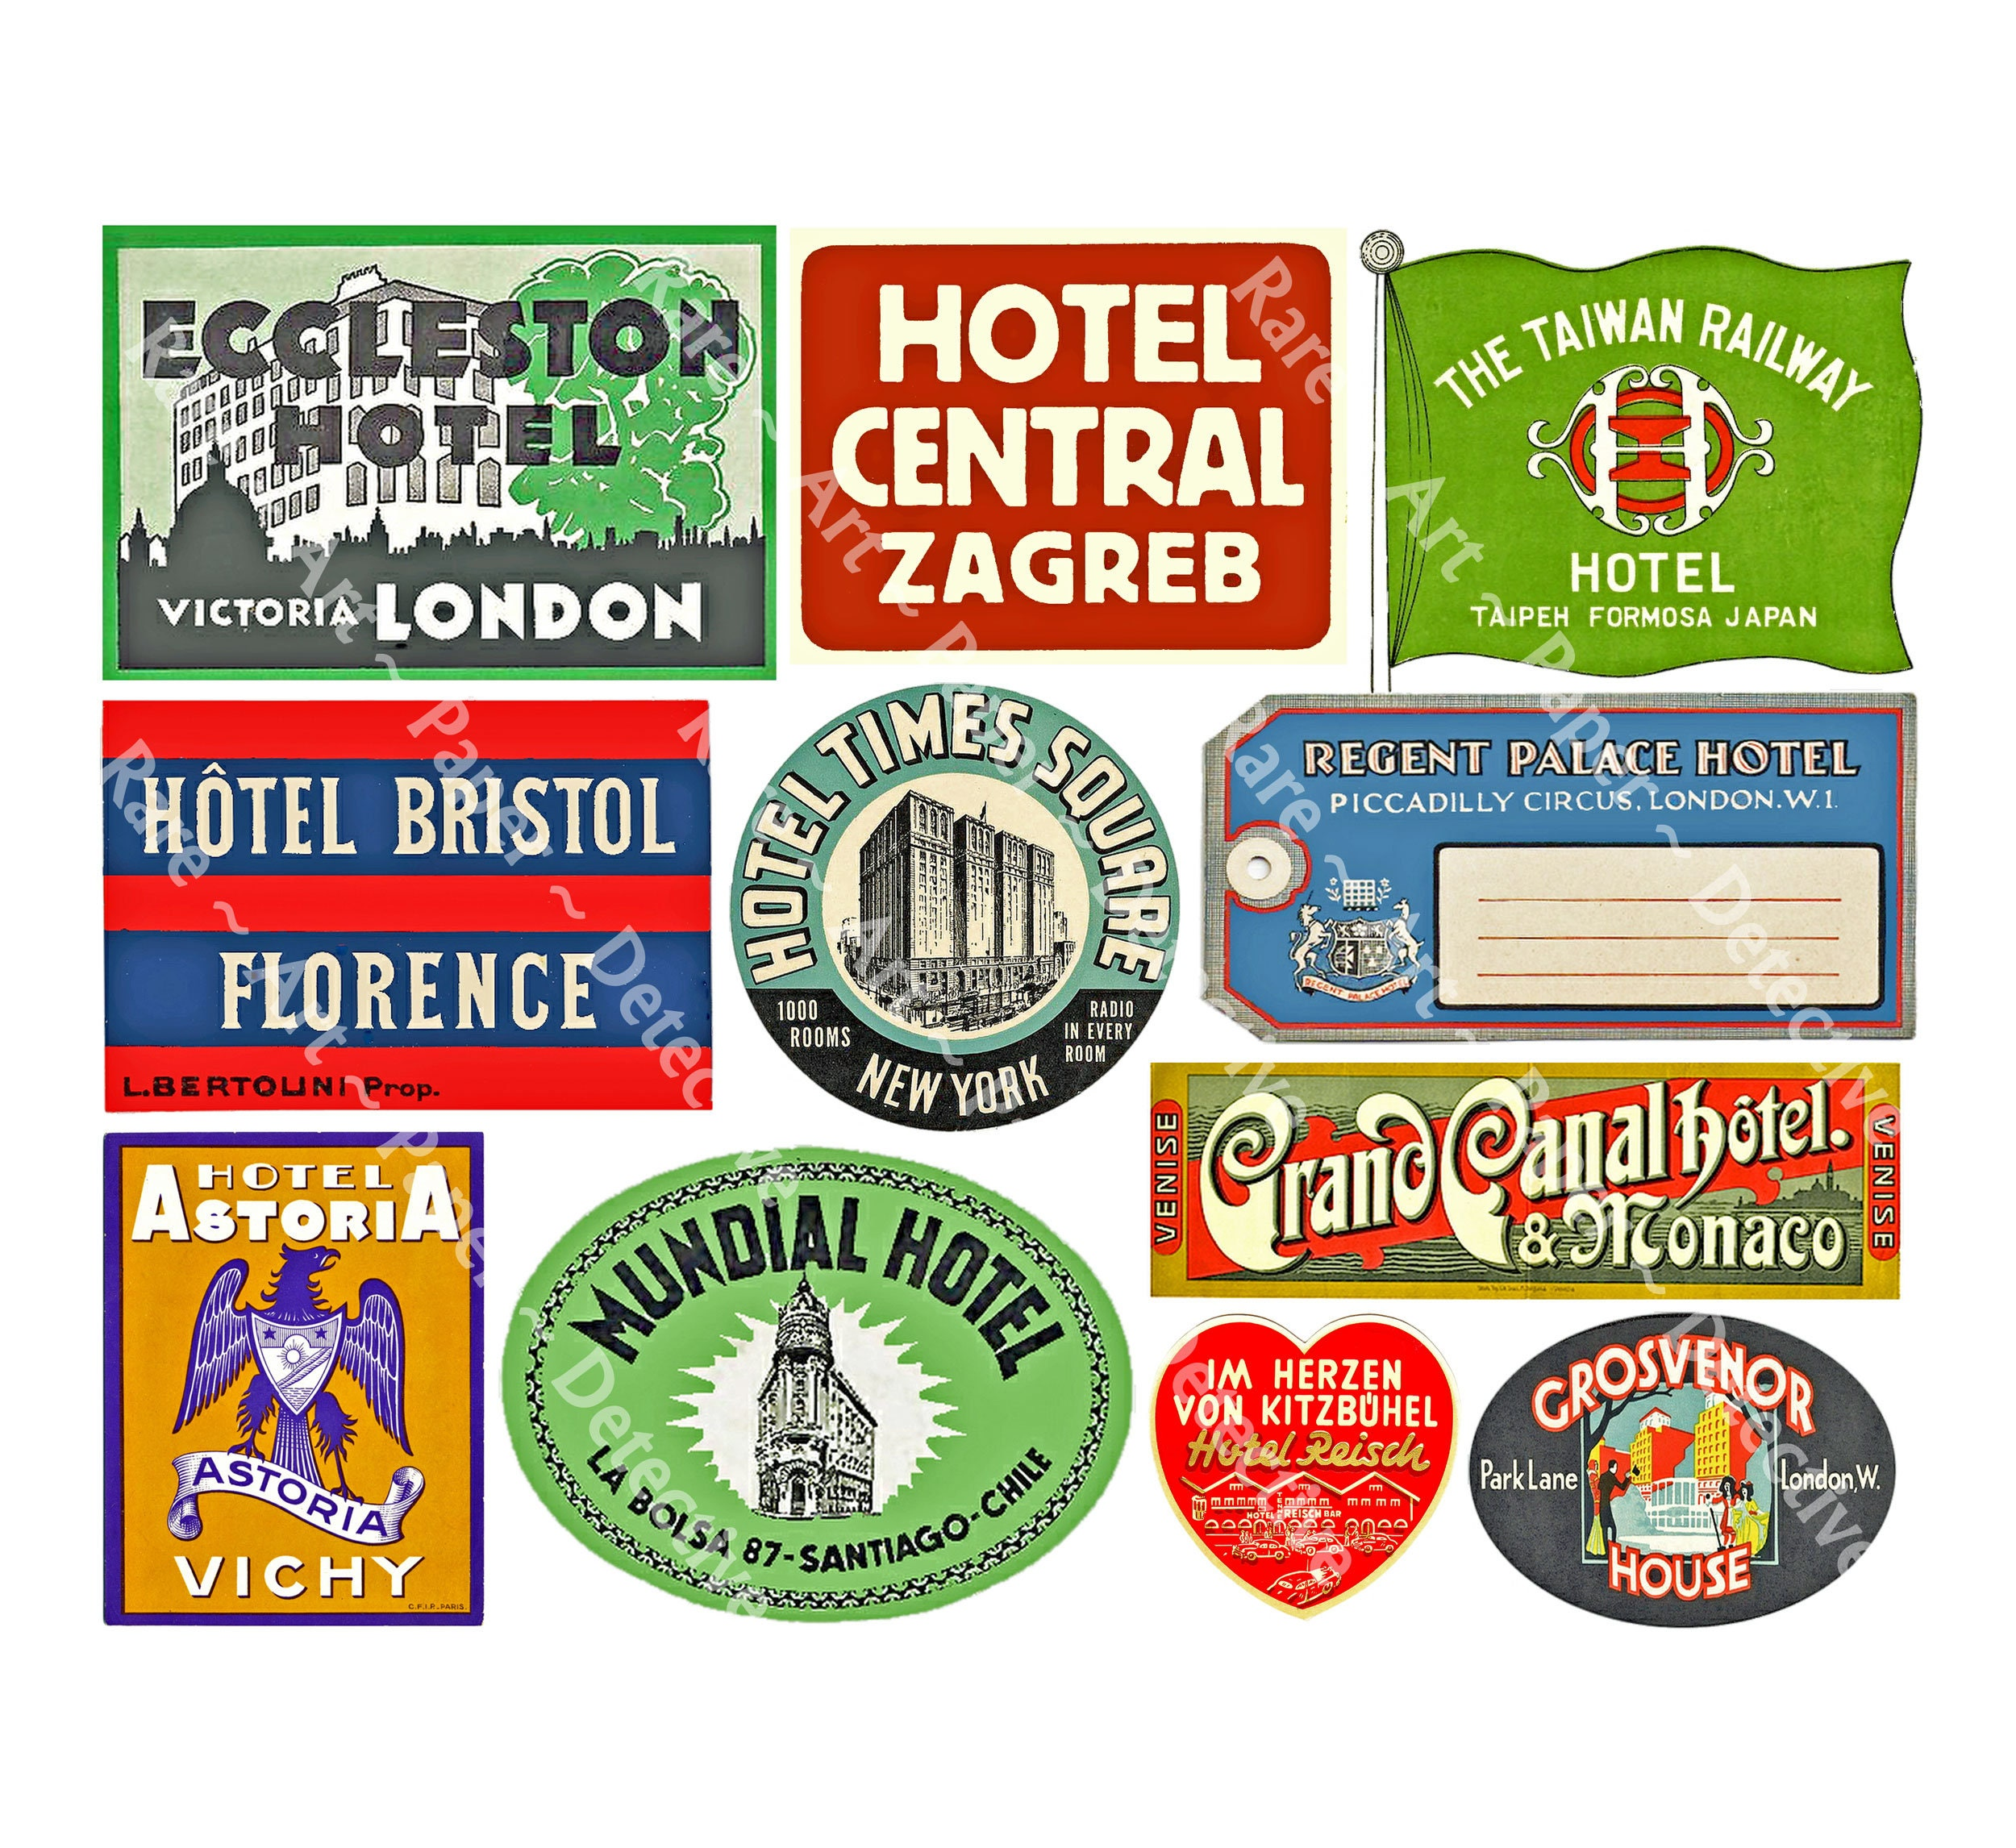 3feb8095e4a3 Travel Label Stickers, Hotel Luggage Tags, Printed Sheet, Baggage Decals,  Vintage Trip Journal Tags, Retro Travel Trunk Decal Stickers, 454c